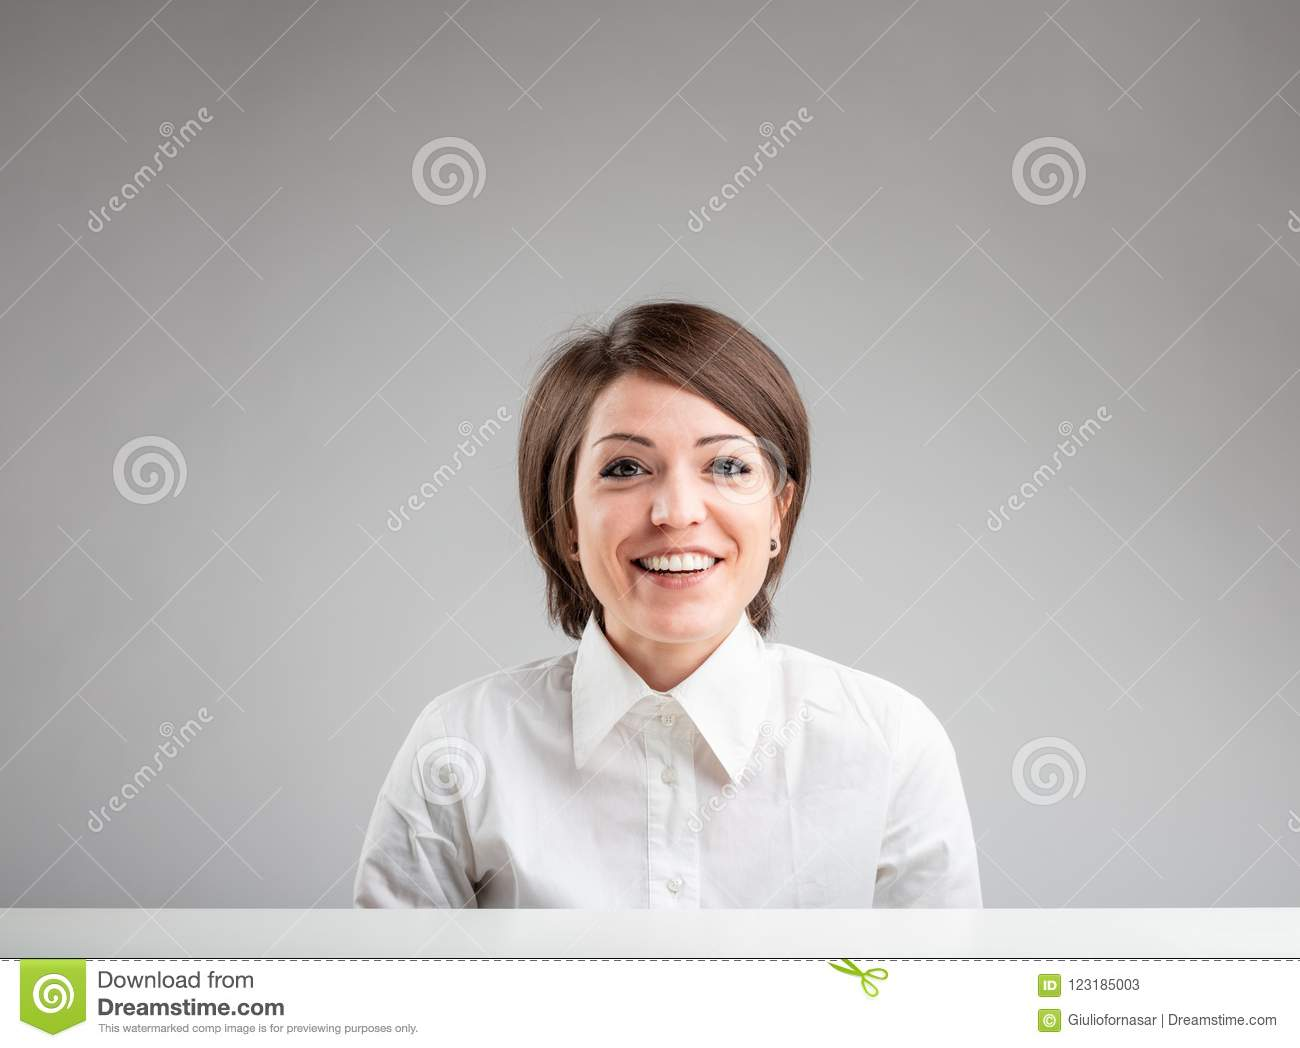 Happy friendly woman with a lovely smile